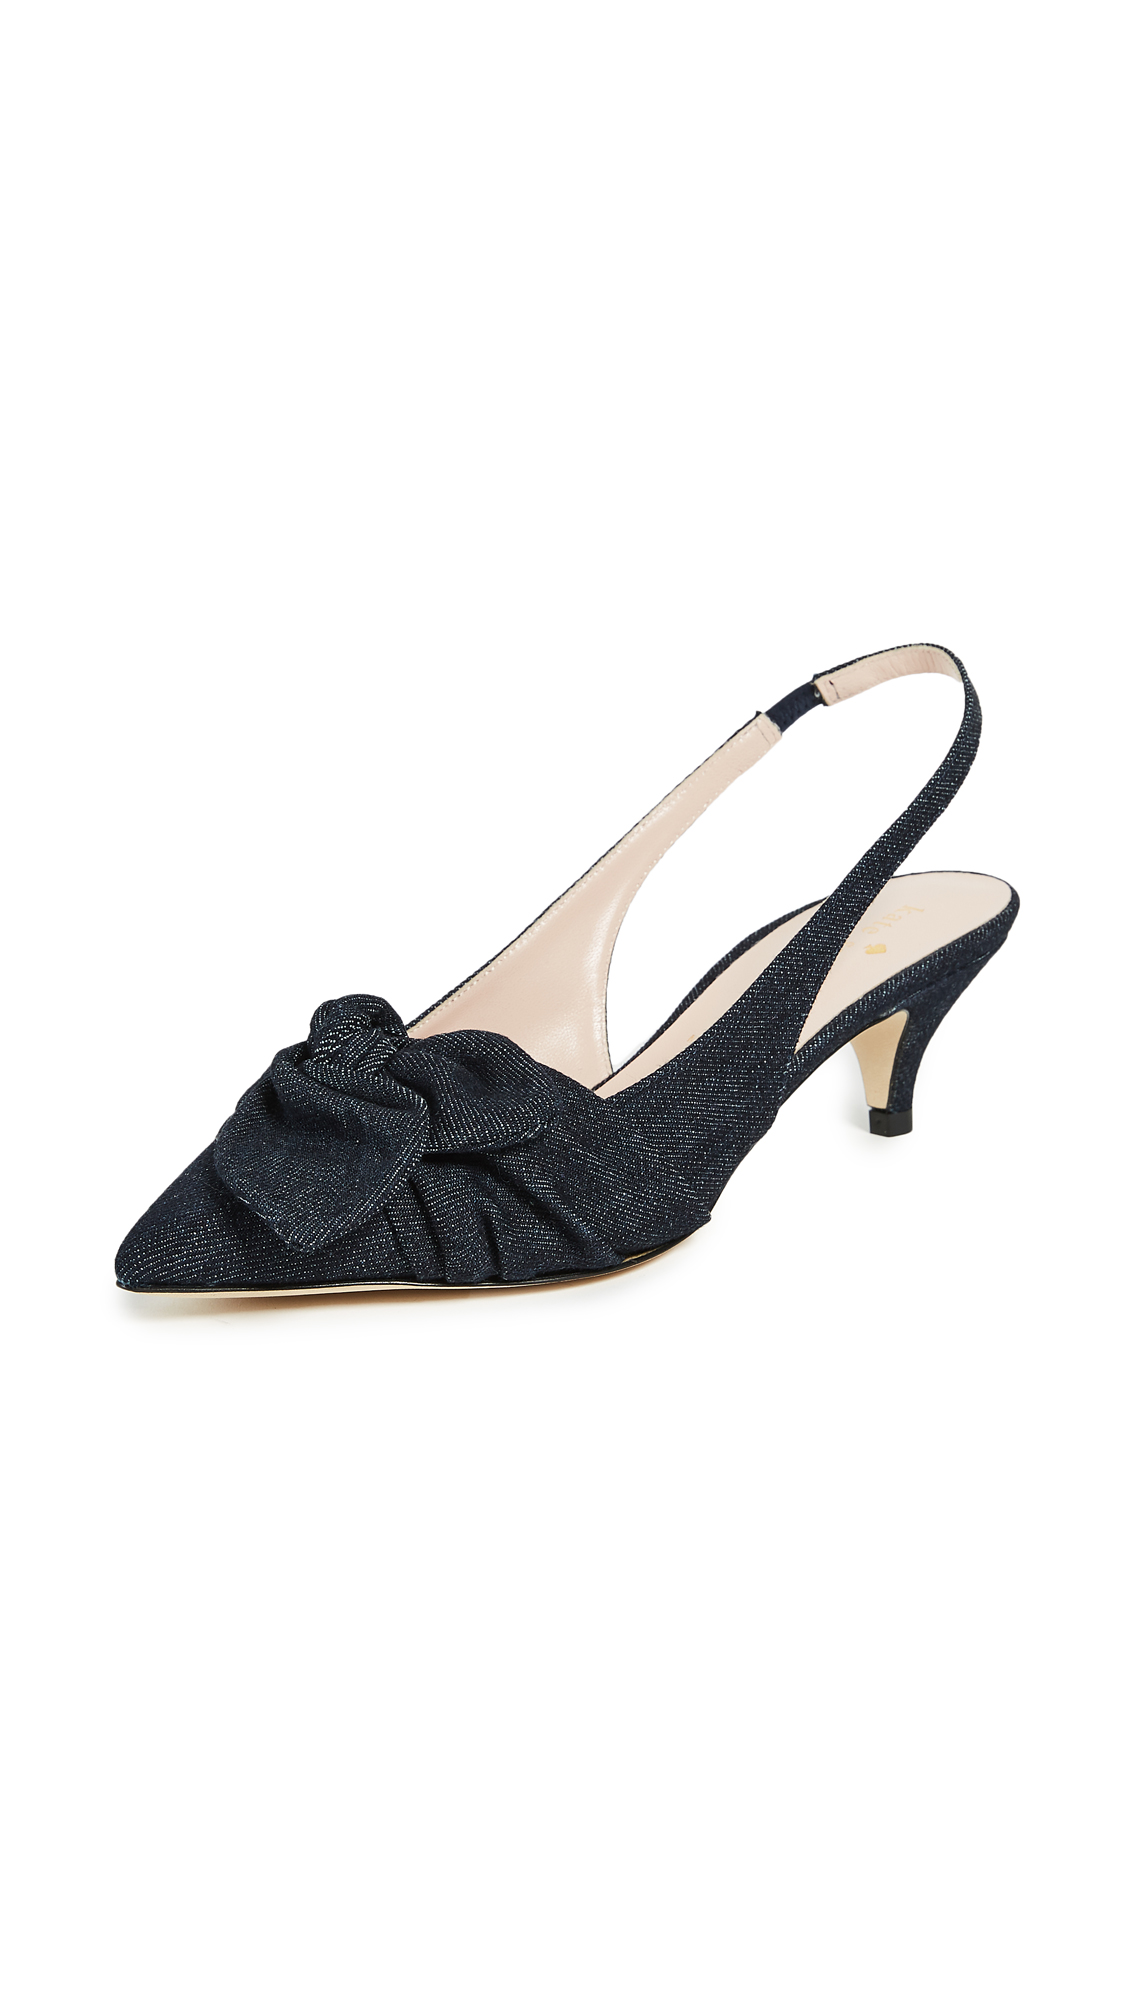 Kate Spade New York Ophelia Slingback Pumps - Denim